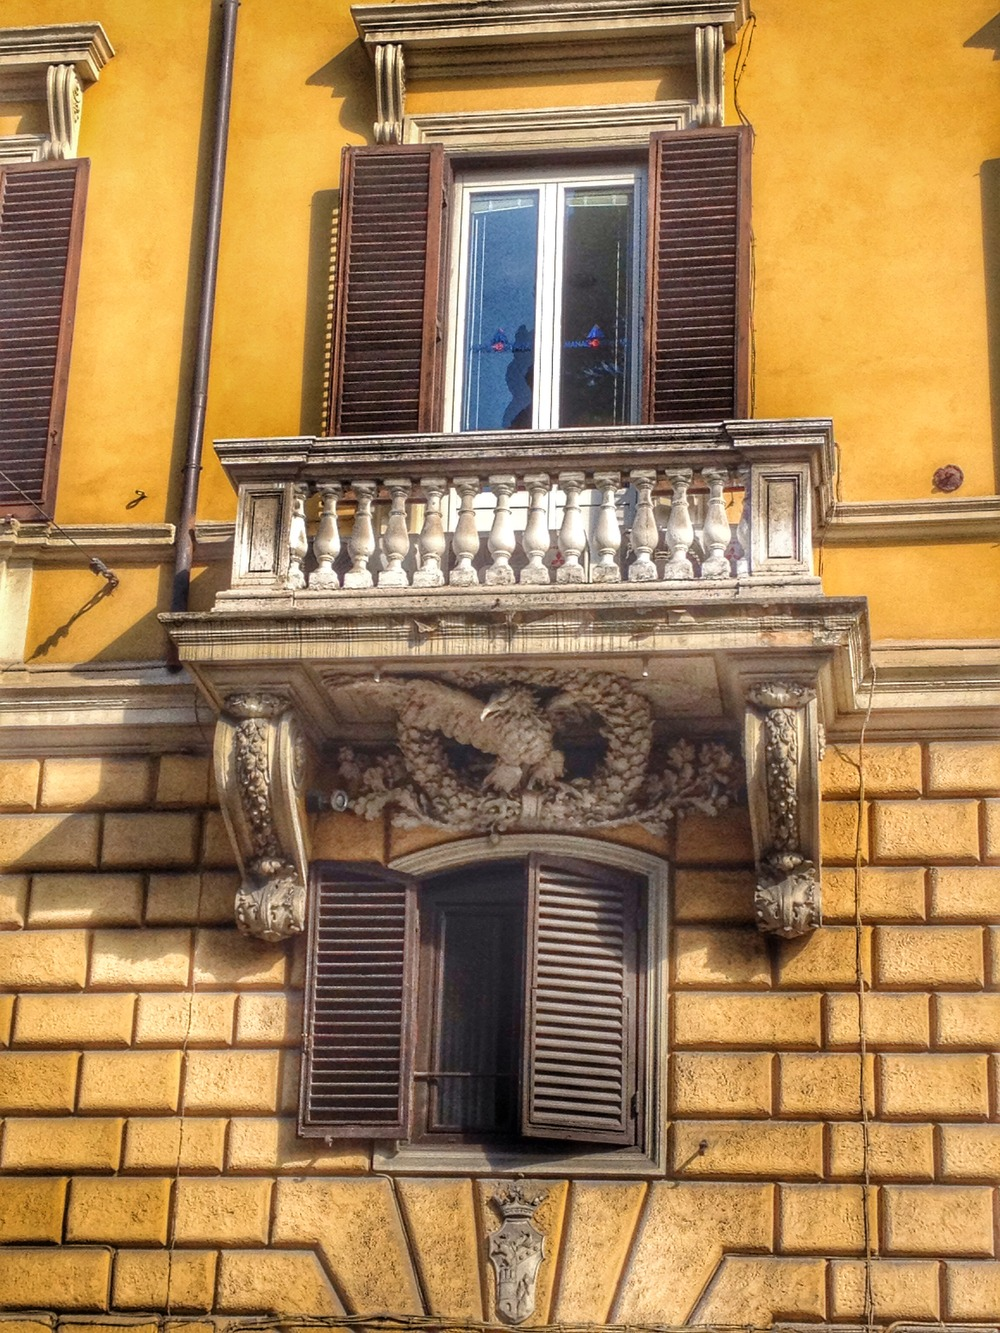 Window details in downtown Rome